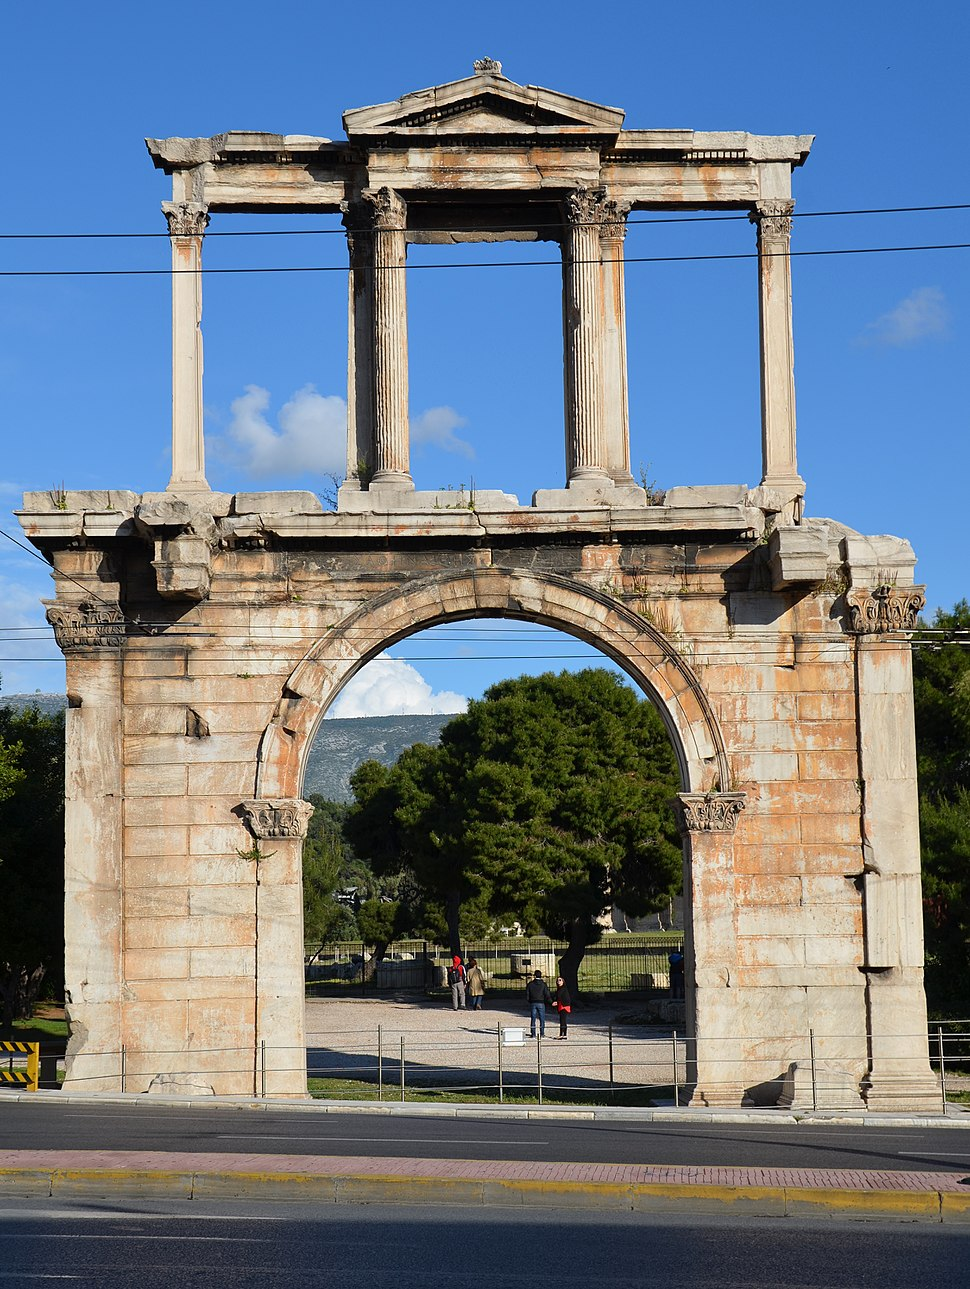 Arch of Hadrian, northwest side (towards the Acropolis), Athens (14038051163)